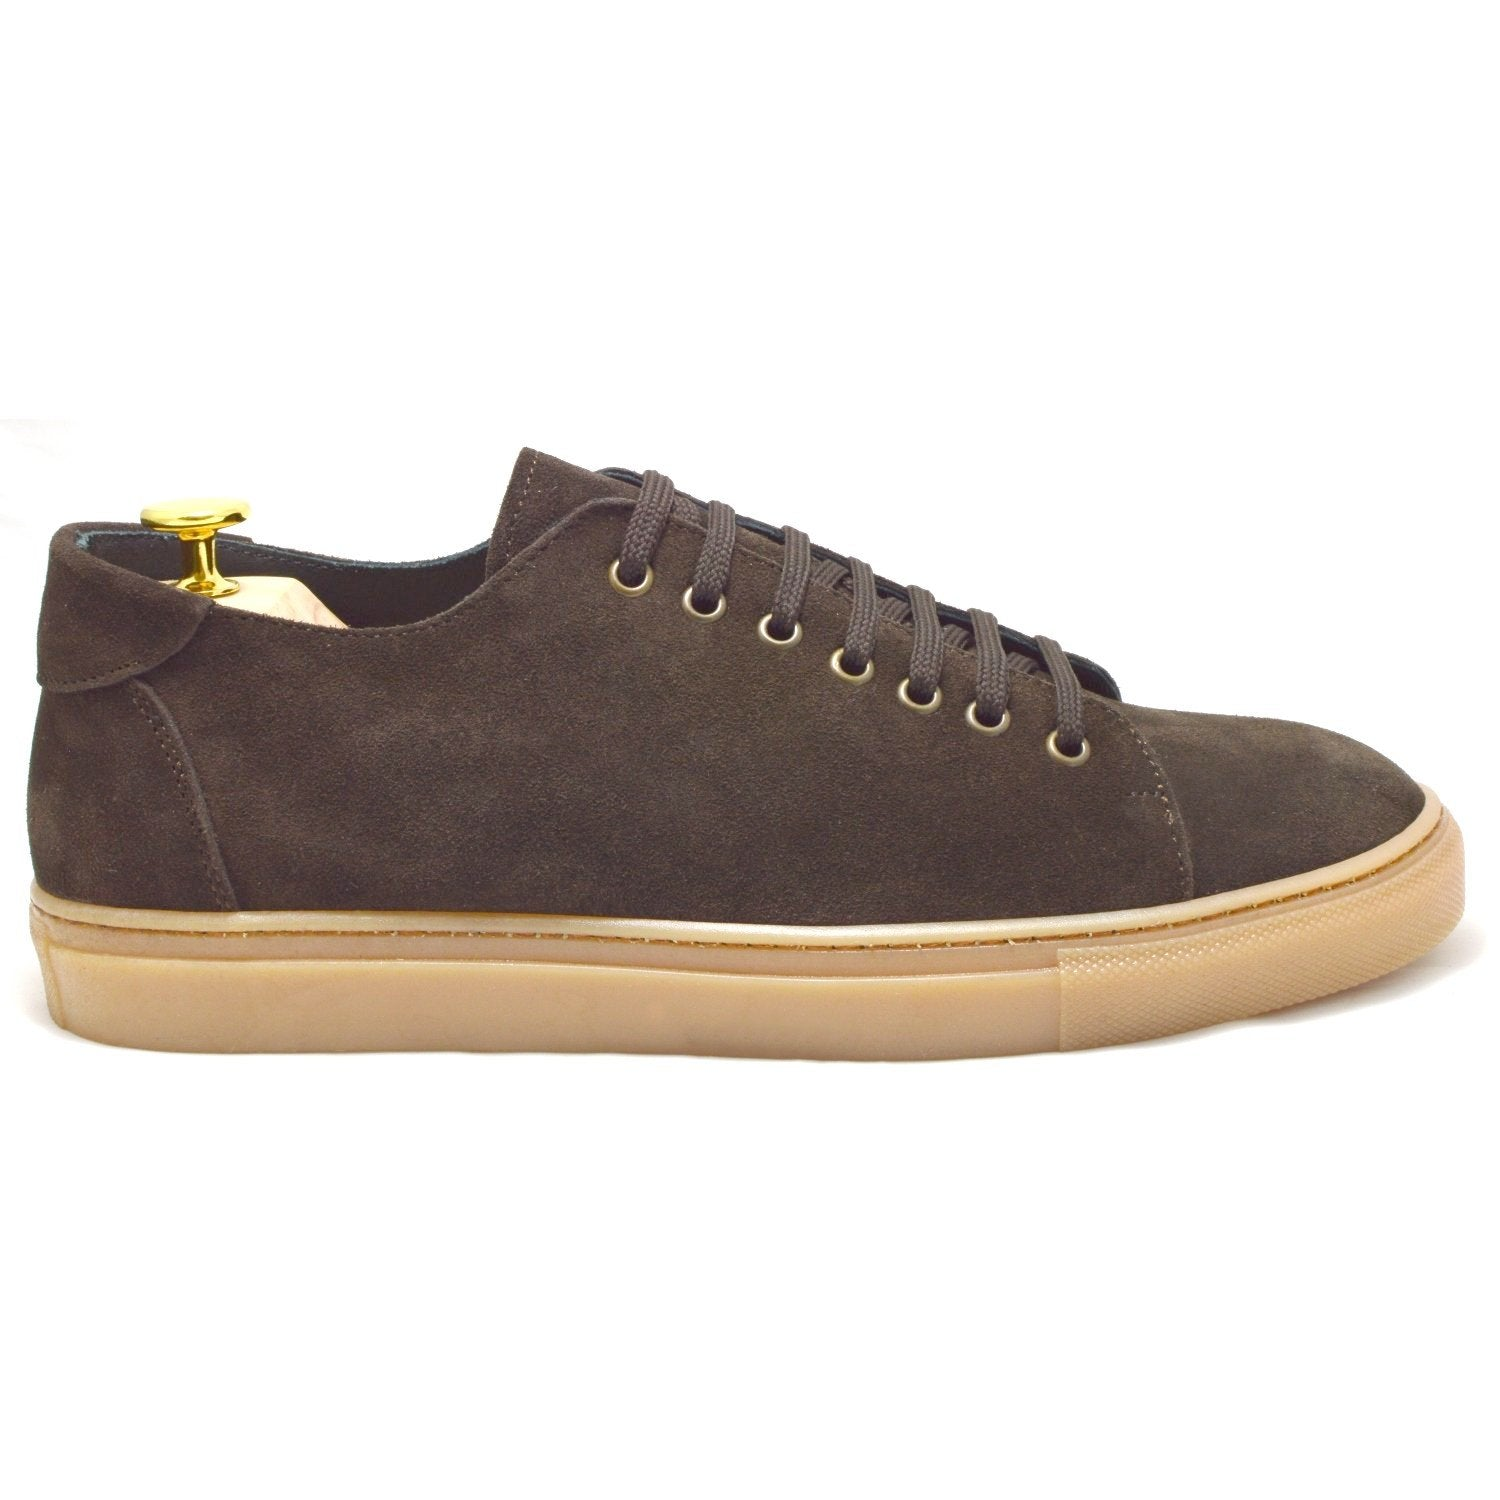 Sneakers Otranto, brown suede, amber sole, made in italy, ofanto italy